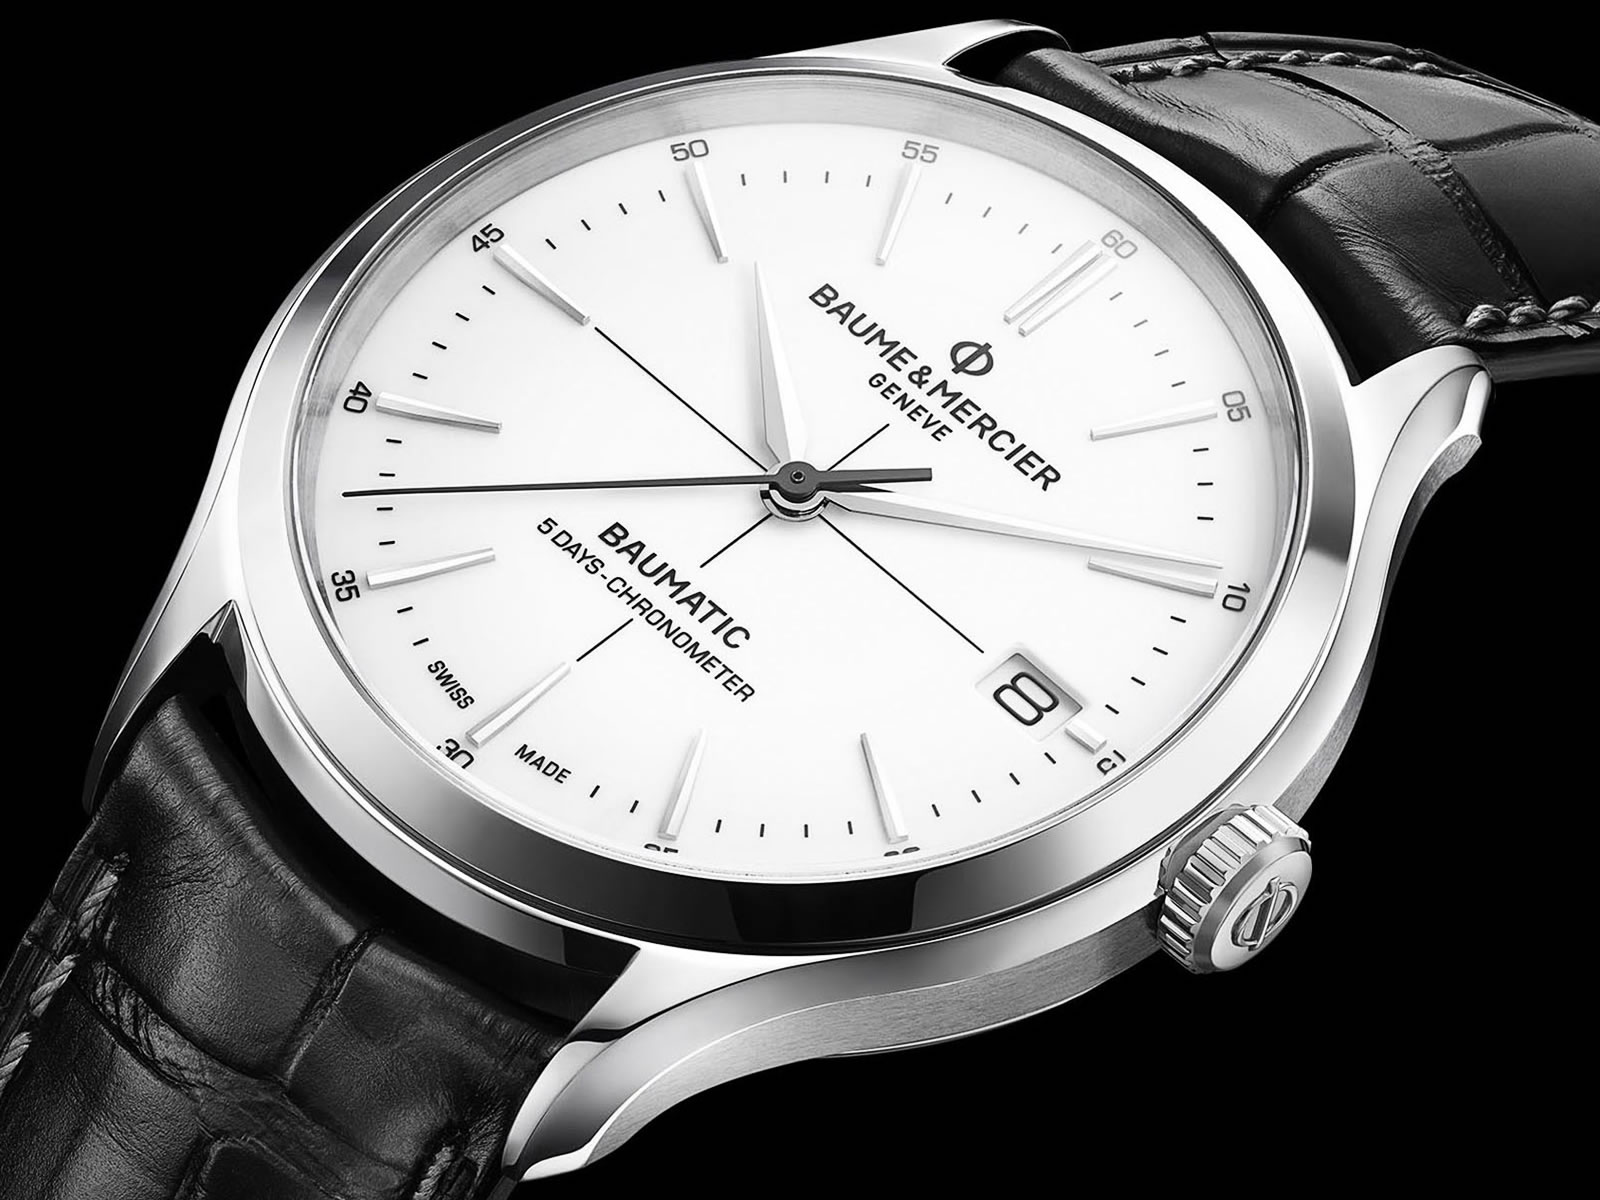 baume-mercier-clifton-baumatic-collection-1-.jpg